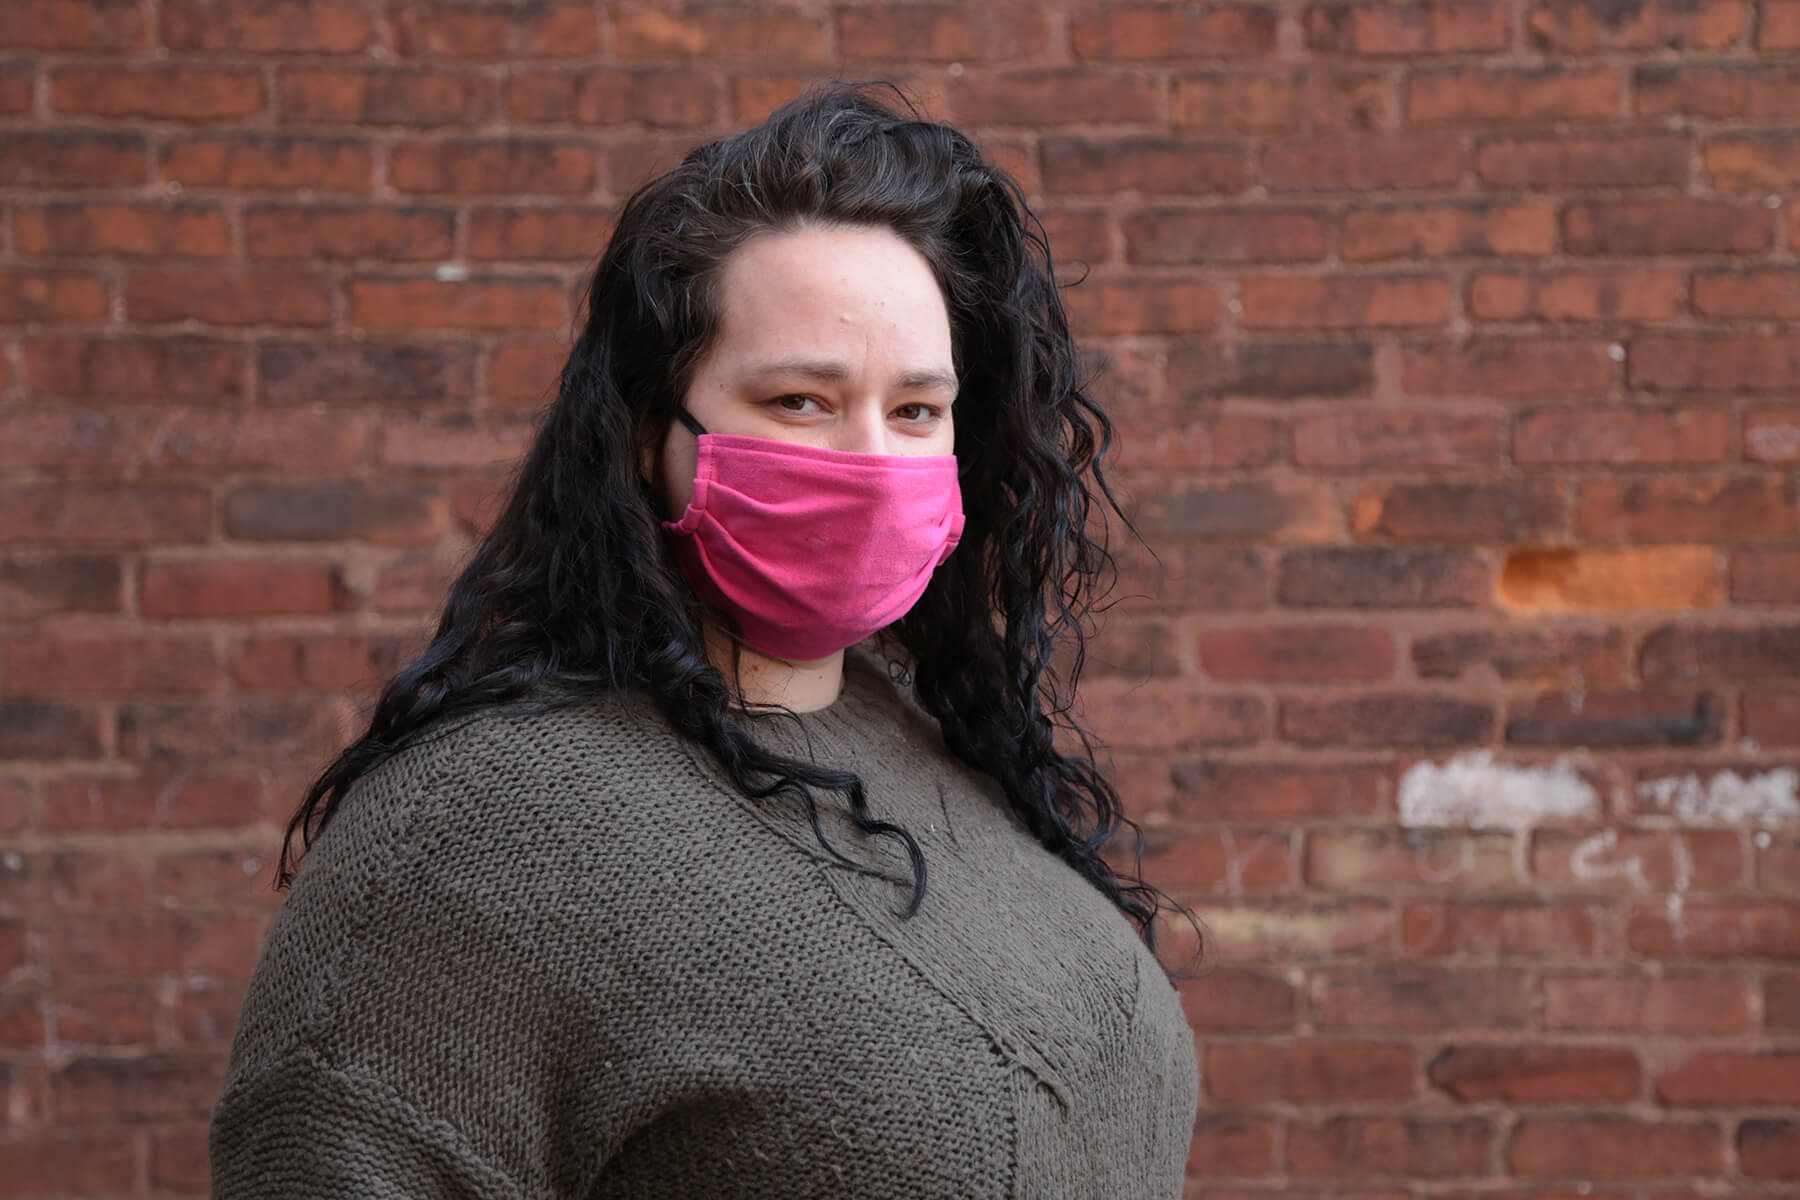 Amber J. photographed outside her home in January. (Photo by Ryan Loew/PublicSource)